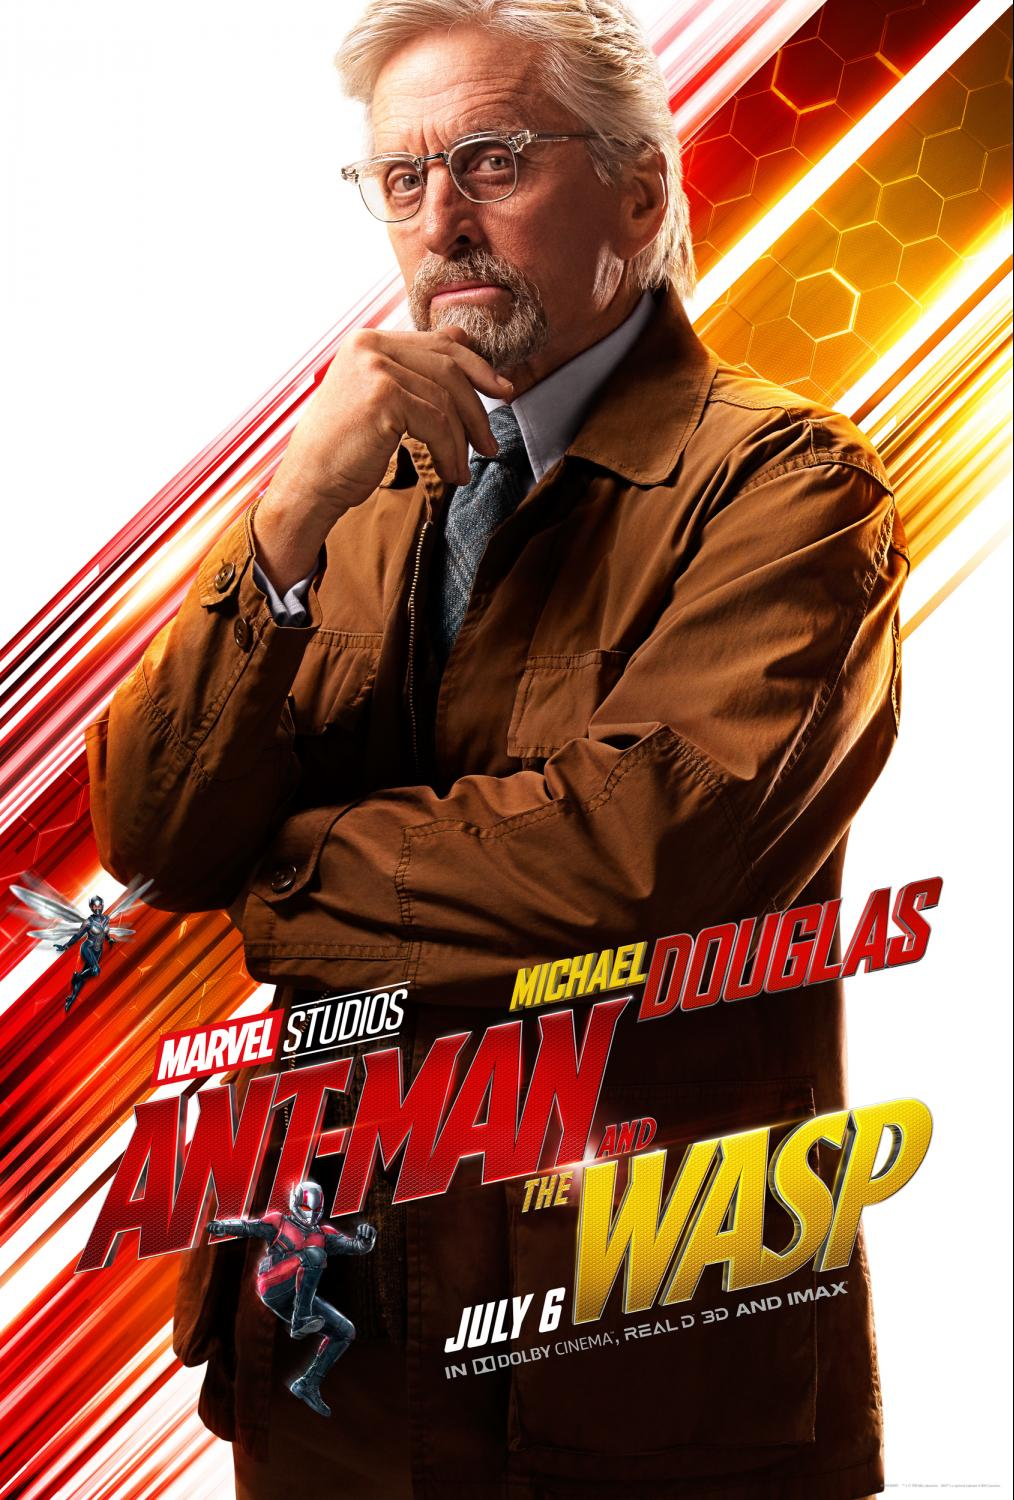 Michael Douglas talks Ant-Man and The Wasp - He's back as Dr Hank Pym. We talk about the film and more. Ant-Man and the Wasp is in theaters now.